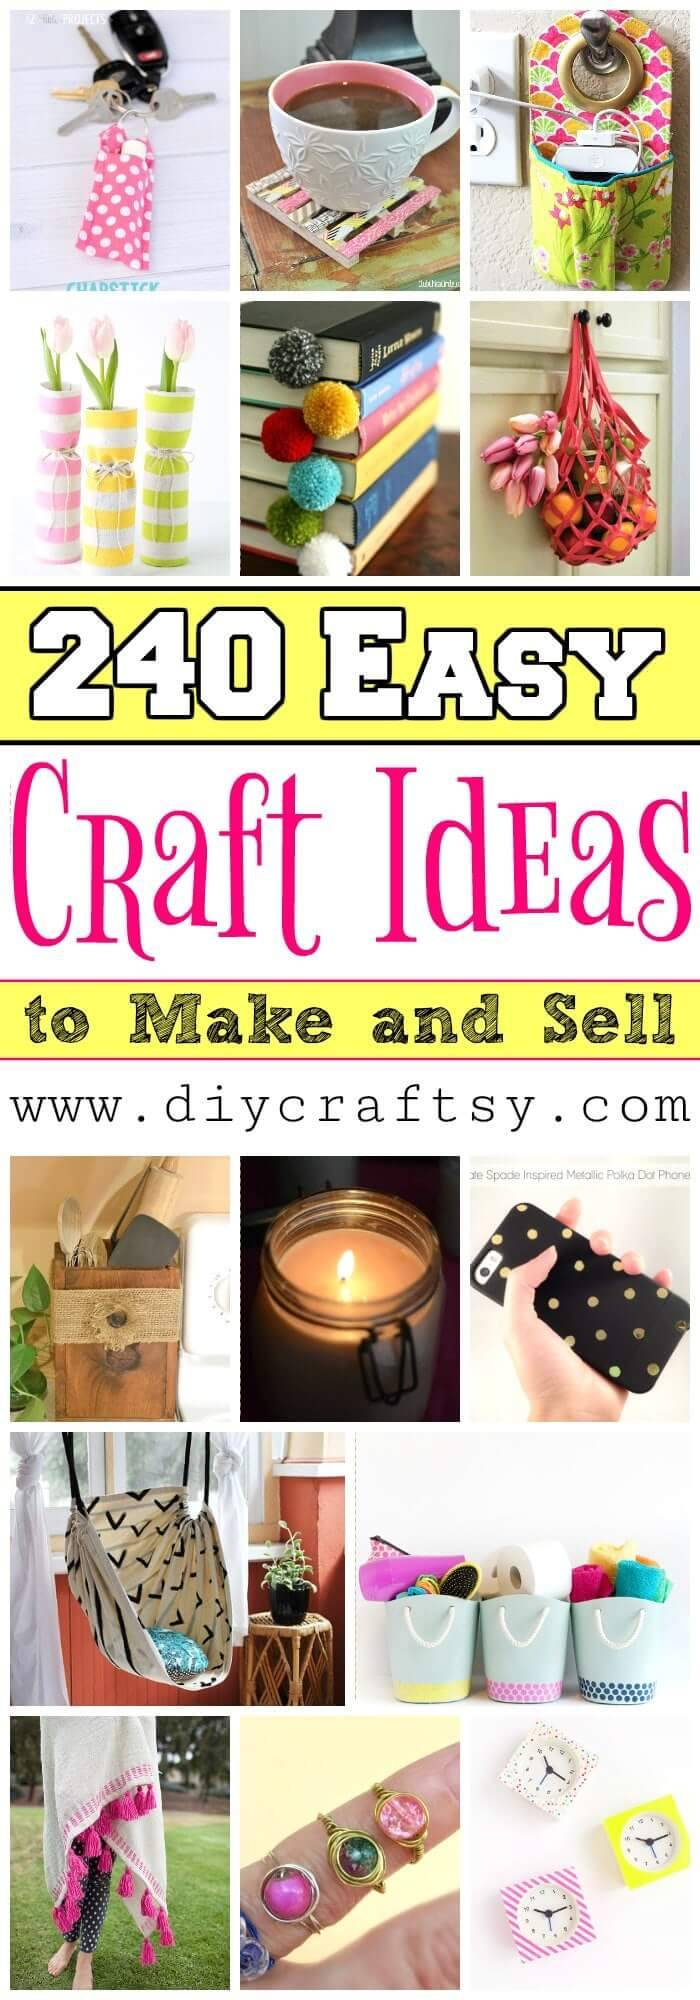 240 Easy Craft Ideas To Make And Sell Diy Crafts